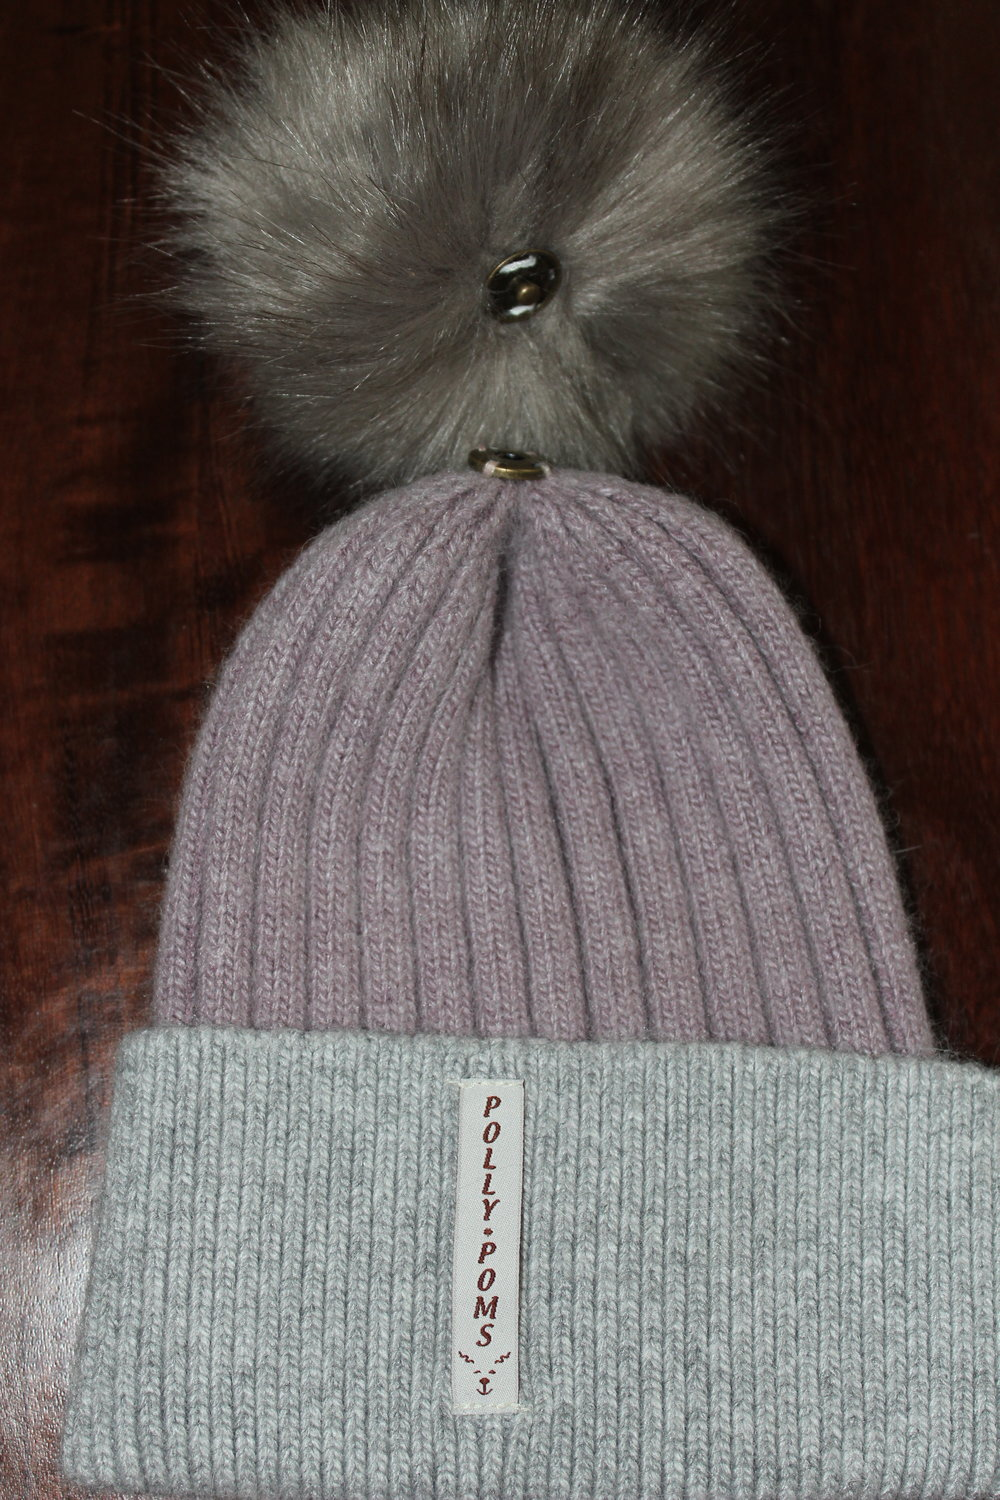 - Polly Poms are machine washable.Wash in a cold cycle, dry on low heat.Detach pom before washing.Polly Pom two toned and solid color hats are super soft, made from an Angora wool blend.Polly Pom cable knit hats are super soft made from a mix of wool and acrylic materials.Polly Pom beanie hats are super soft made from a wool blend.ALL POMS ARE FAUX FUR.